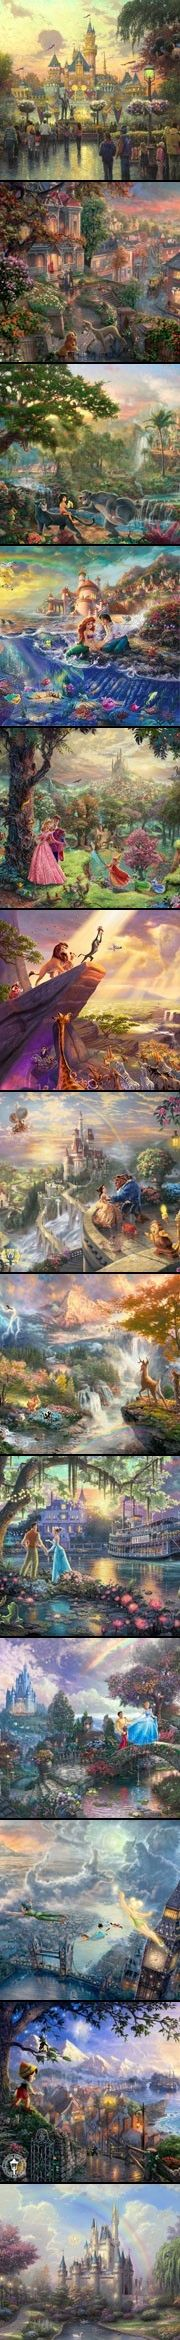 Thomas Kinkade Disney Paintings: Disney world, Lady & the Tramp, The Jungle Book, The Little Mermaid, Sleeping Beauty, The Lion King, Beauty & the Beast, Bambi, The Princess & the Frog, Cinderella, Peter Pan, Pinocchio, Disney Castle